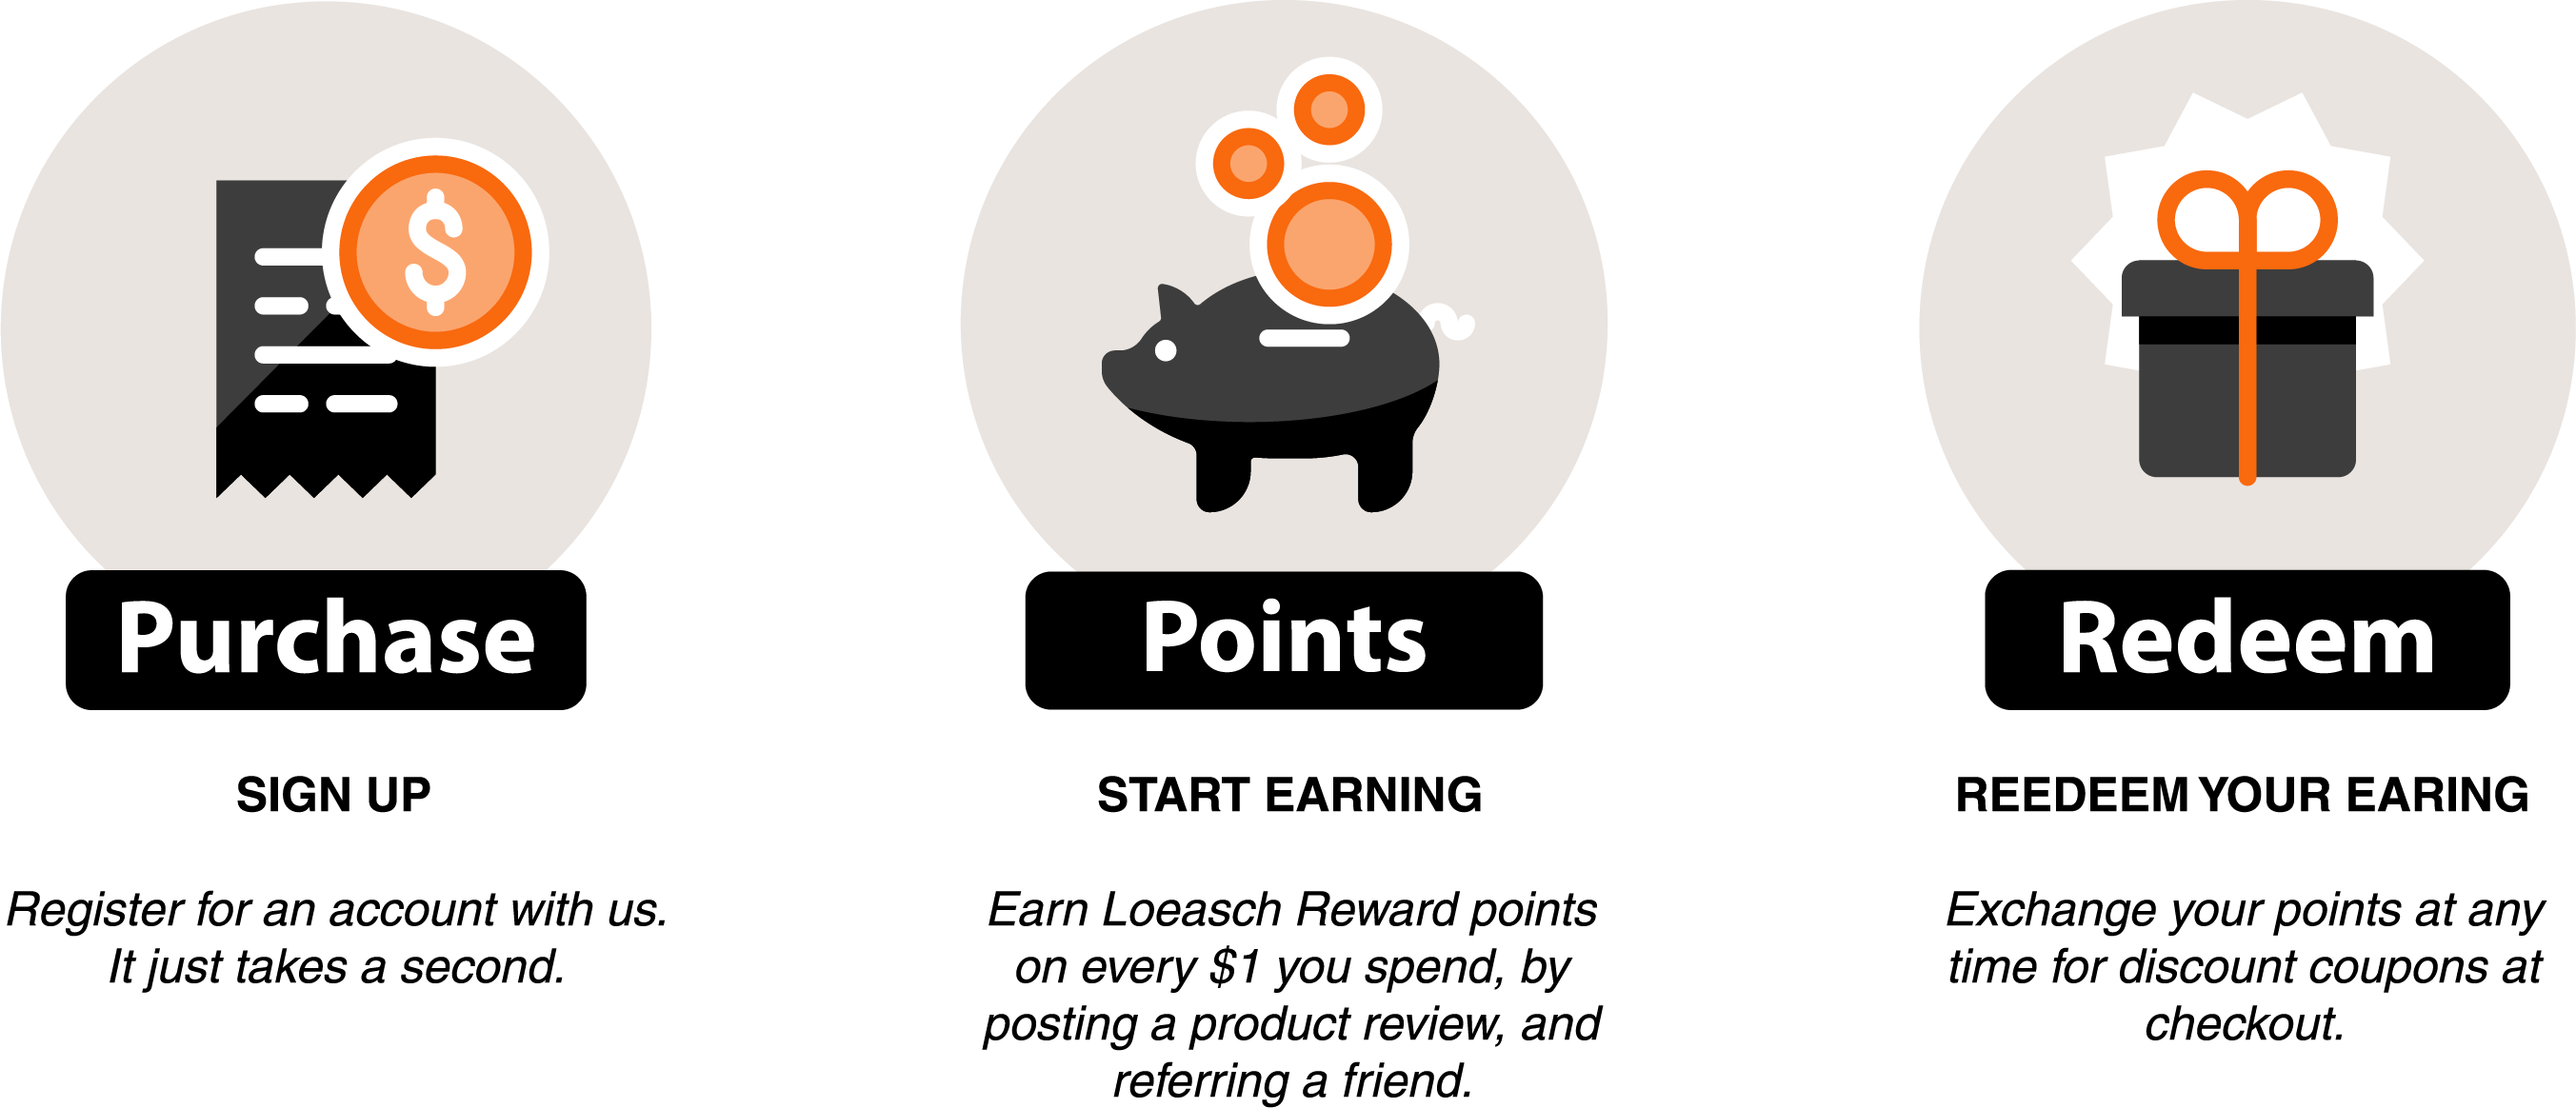 reward-program-section-1-191021.png